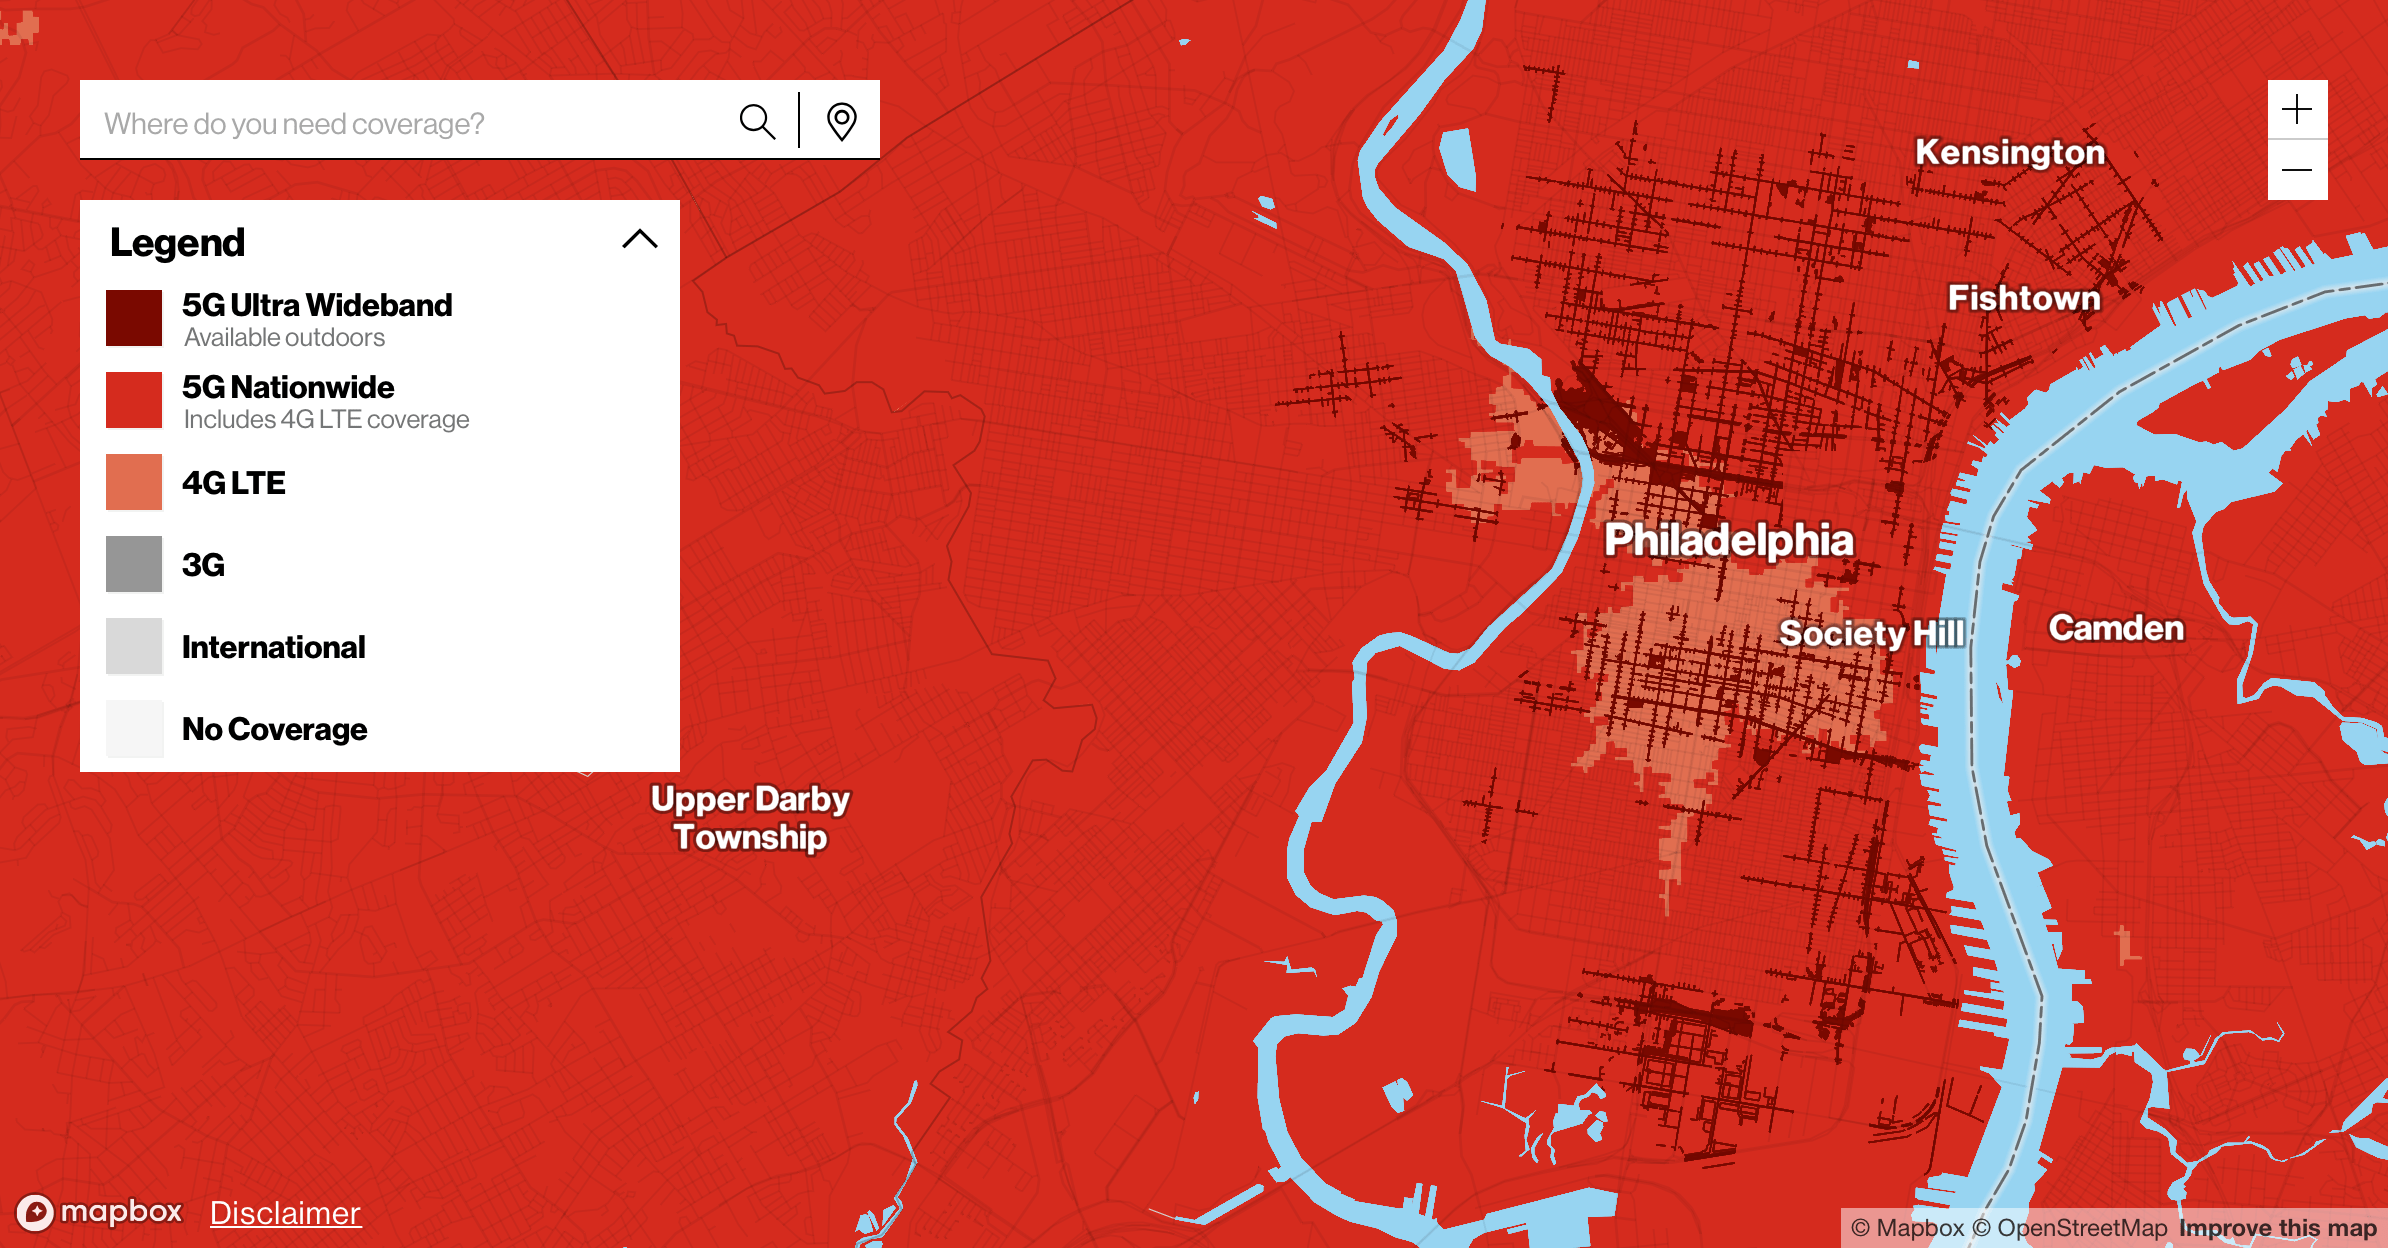 Verizon's coverage map for Center City Philadelphia.